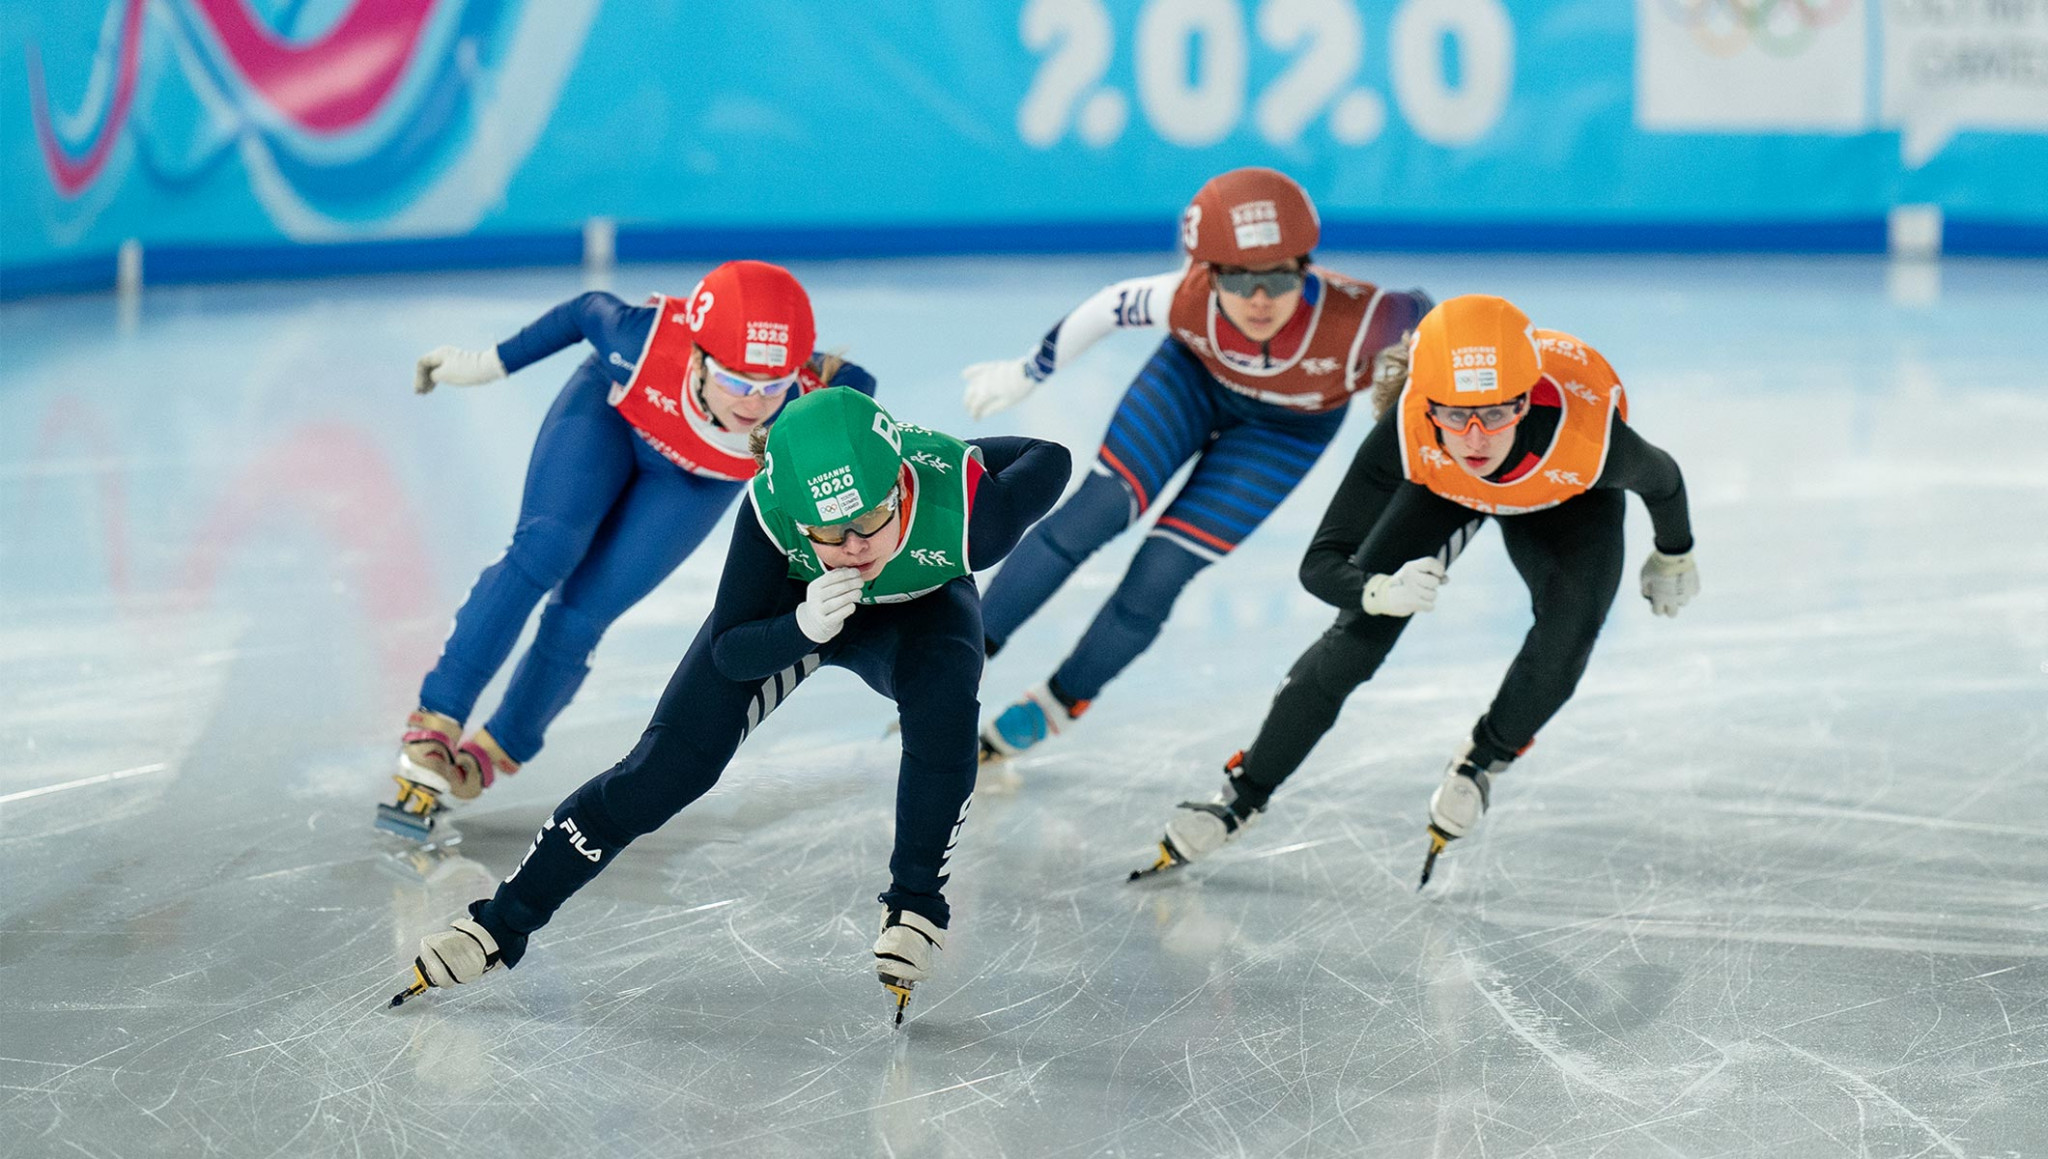 The mixed relay brought the short track speed skating programme at Lausanne 2020 to a close ©OIS